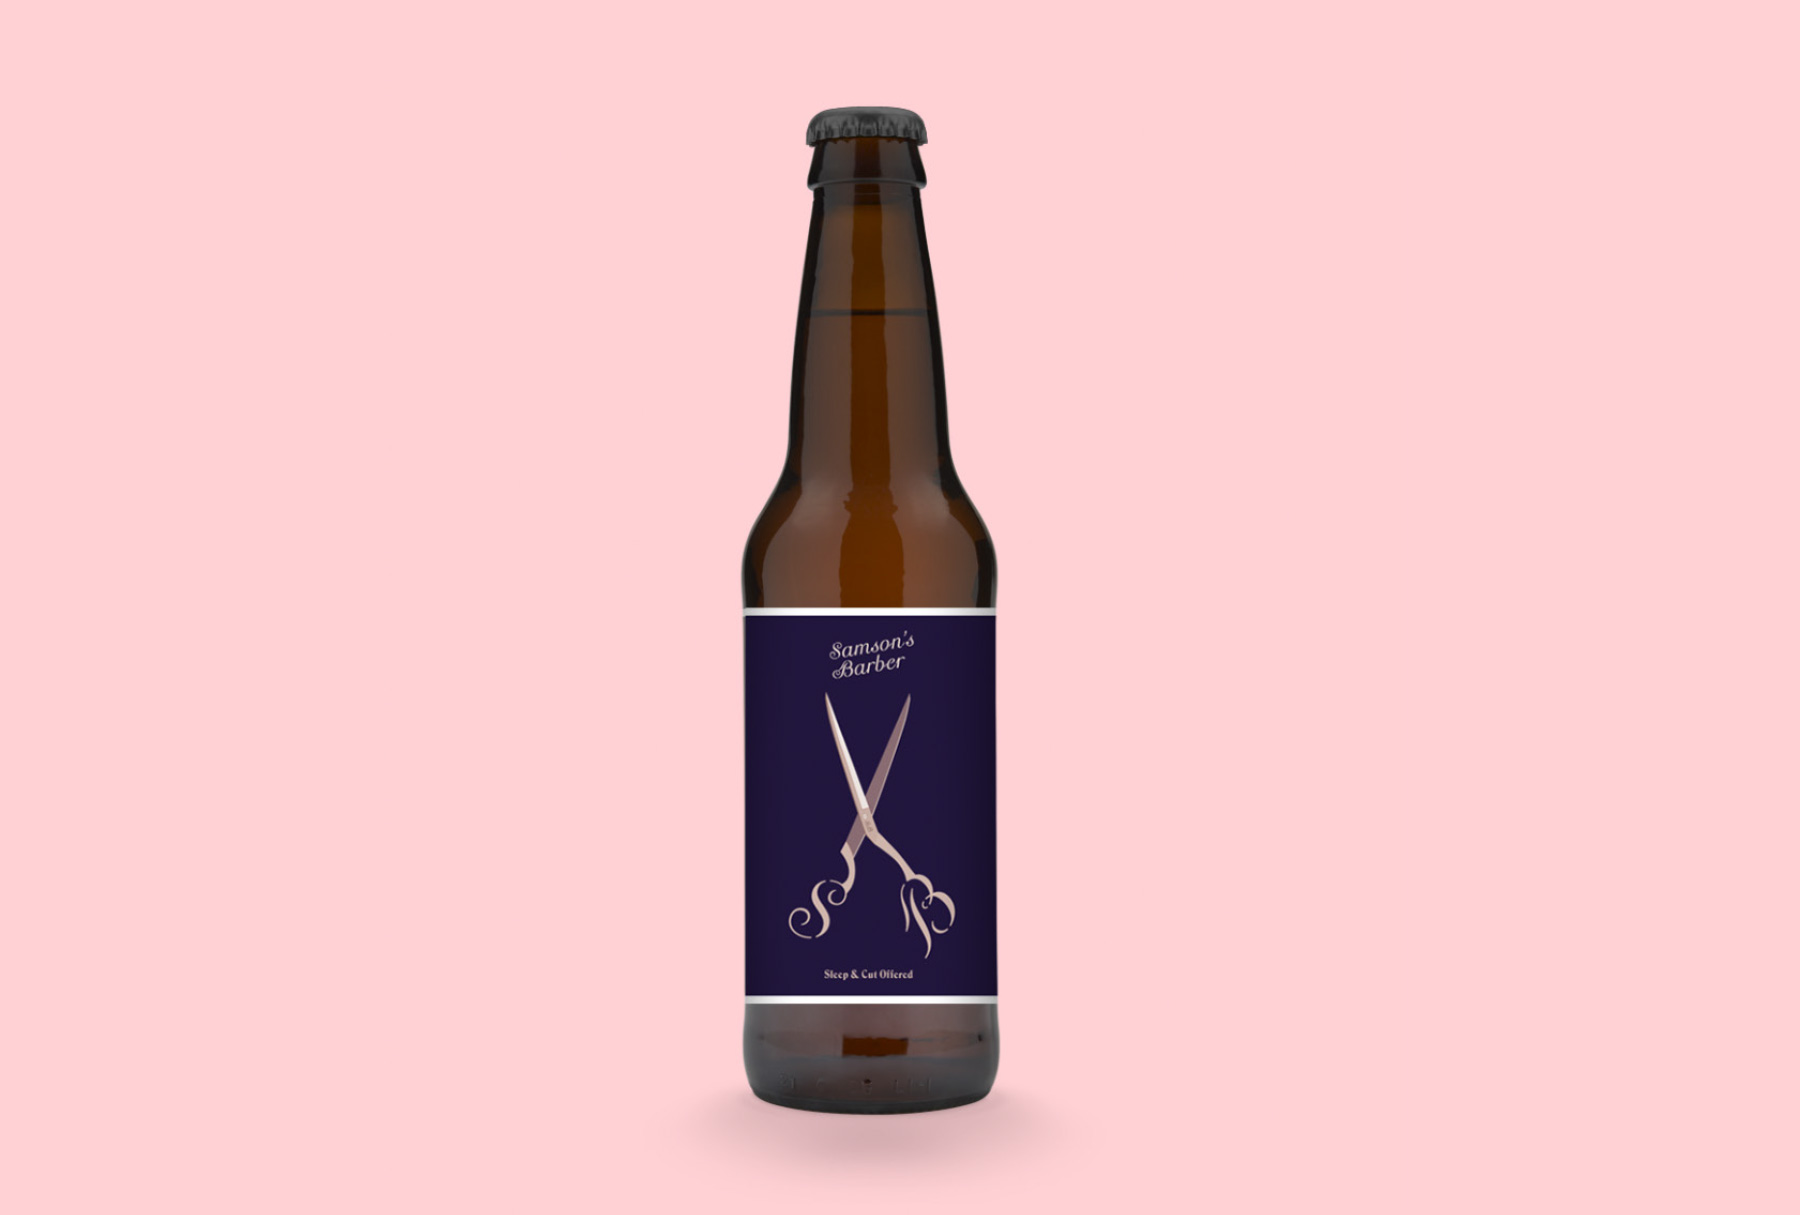 front view of a beer bottle with a dark violet label with a old-rose illustration of SB emblazoned pair of scissors